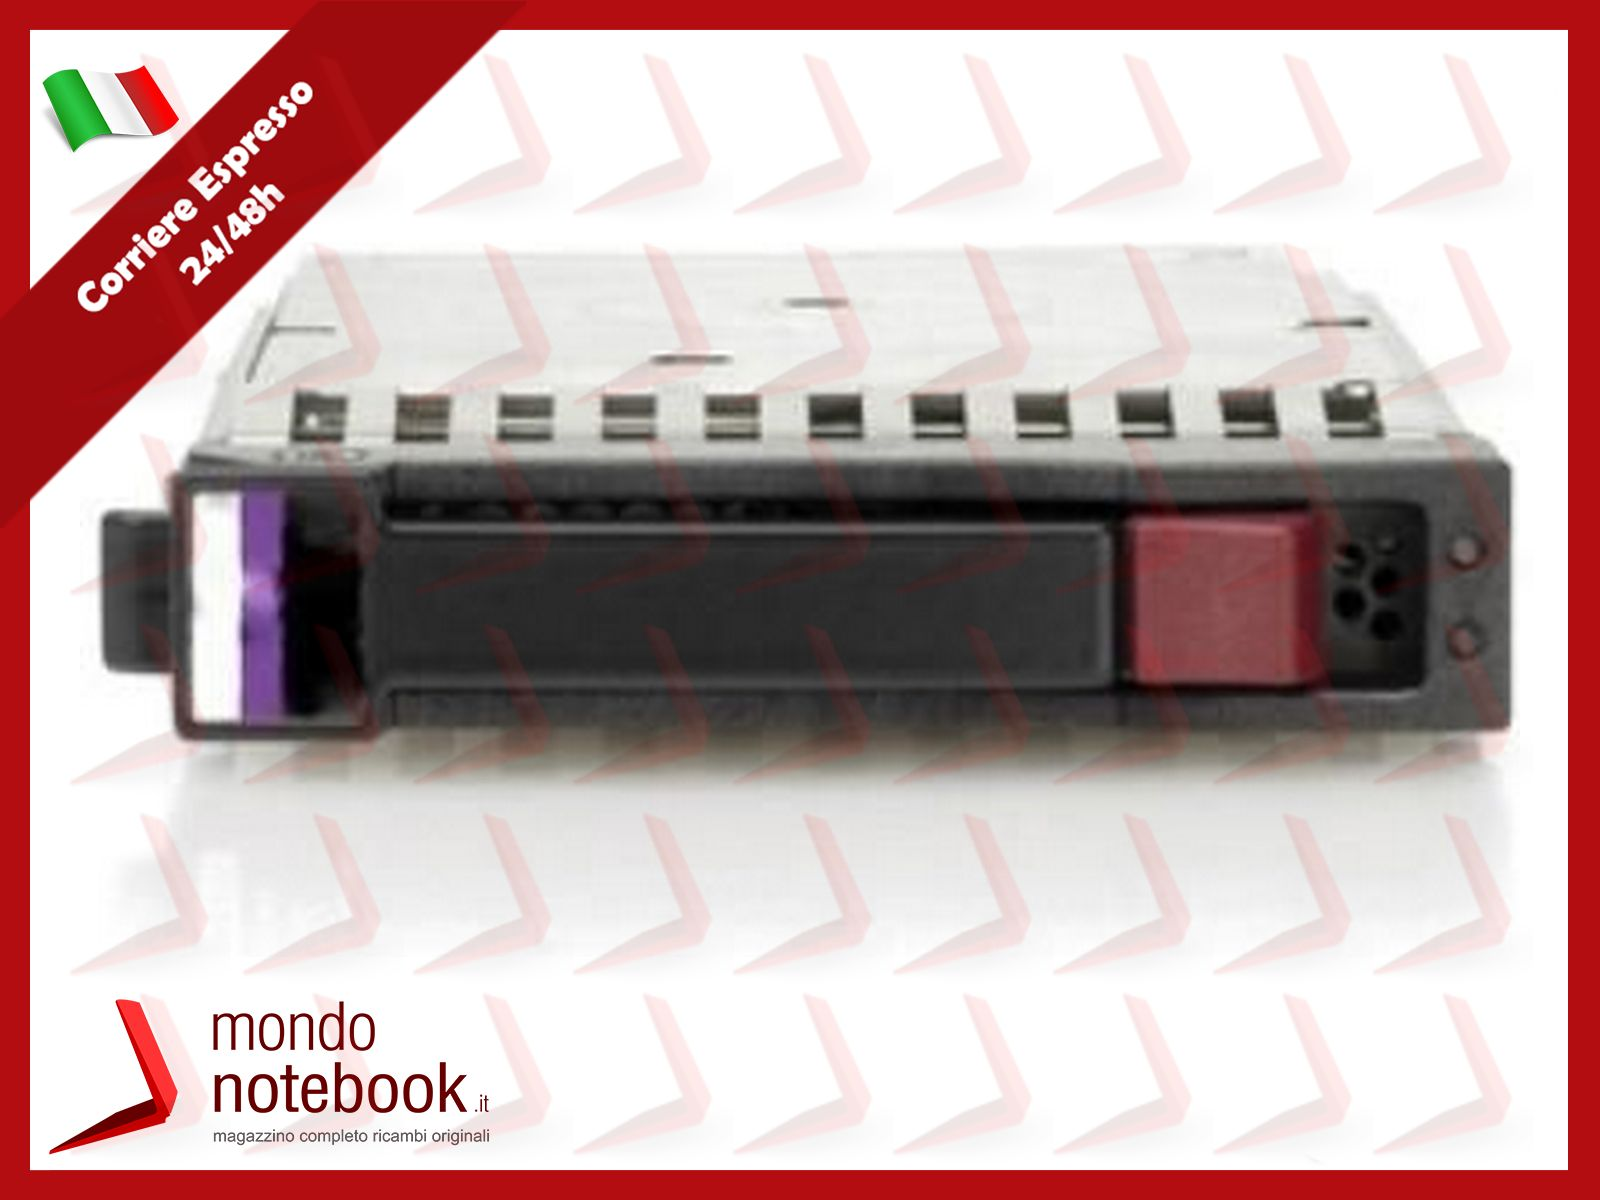 https://www.mondonotebook.it/12499/green-cell-batteria-per-toshiba-satellite-l40-l45-l401-l402-pa3591u-1brs-144v-2200mah.jpg